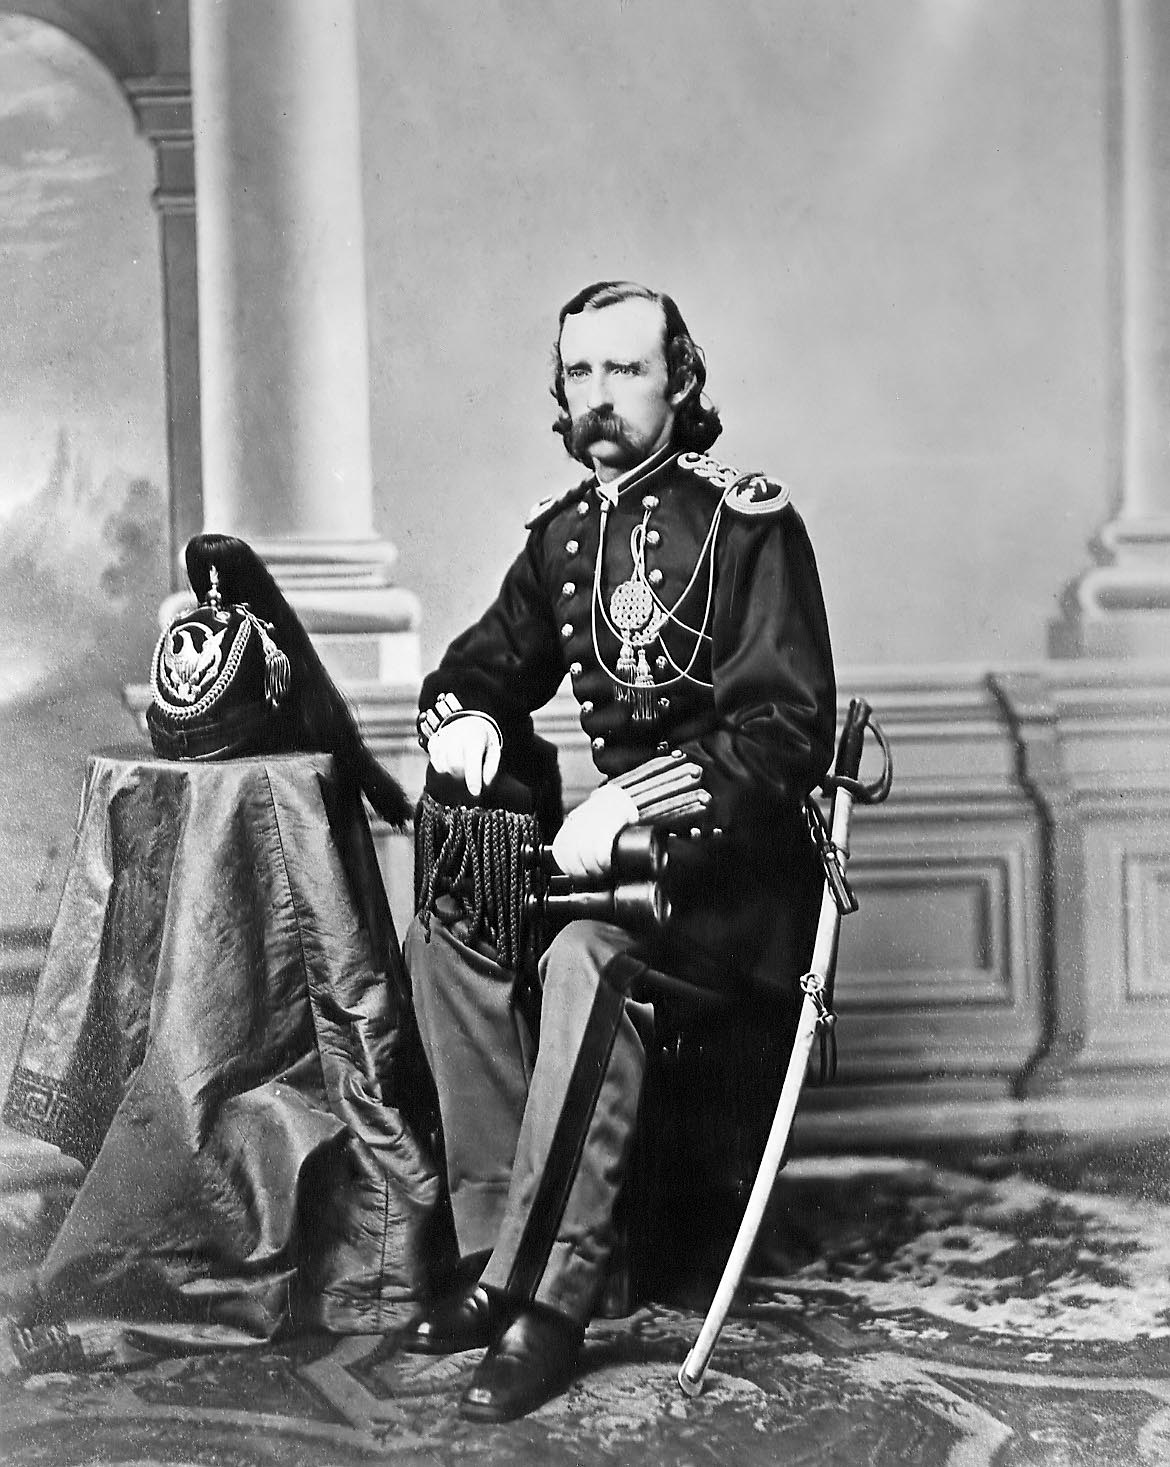 the role of george armstrong custer during the civil war George armstrong custer  with the outbreak of the civil war, custer was called to serve with the union army custer developed a strong reputation during the civil war.